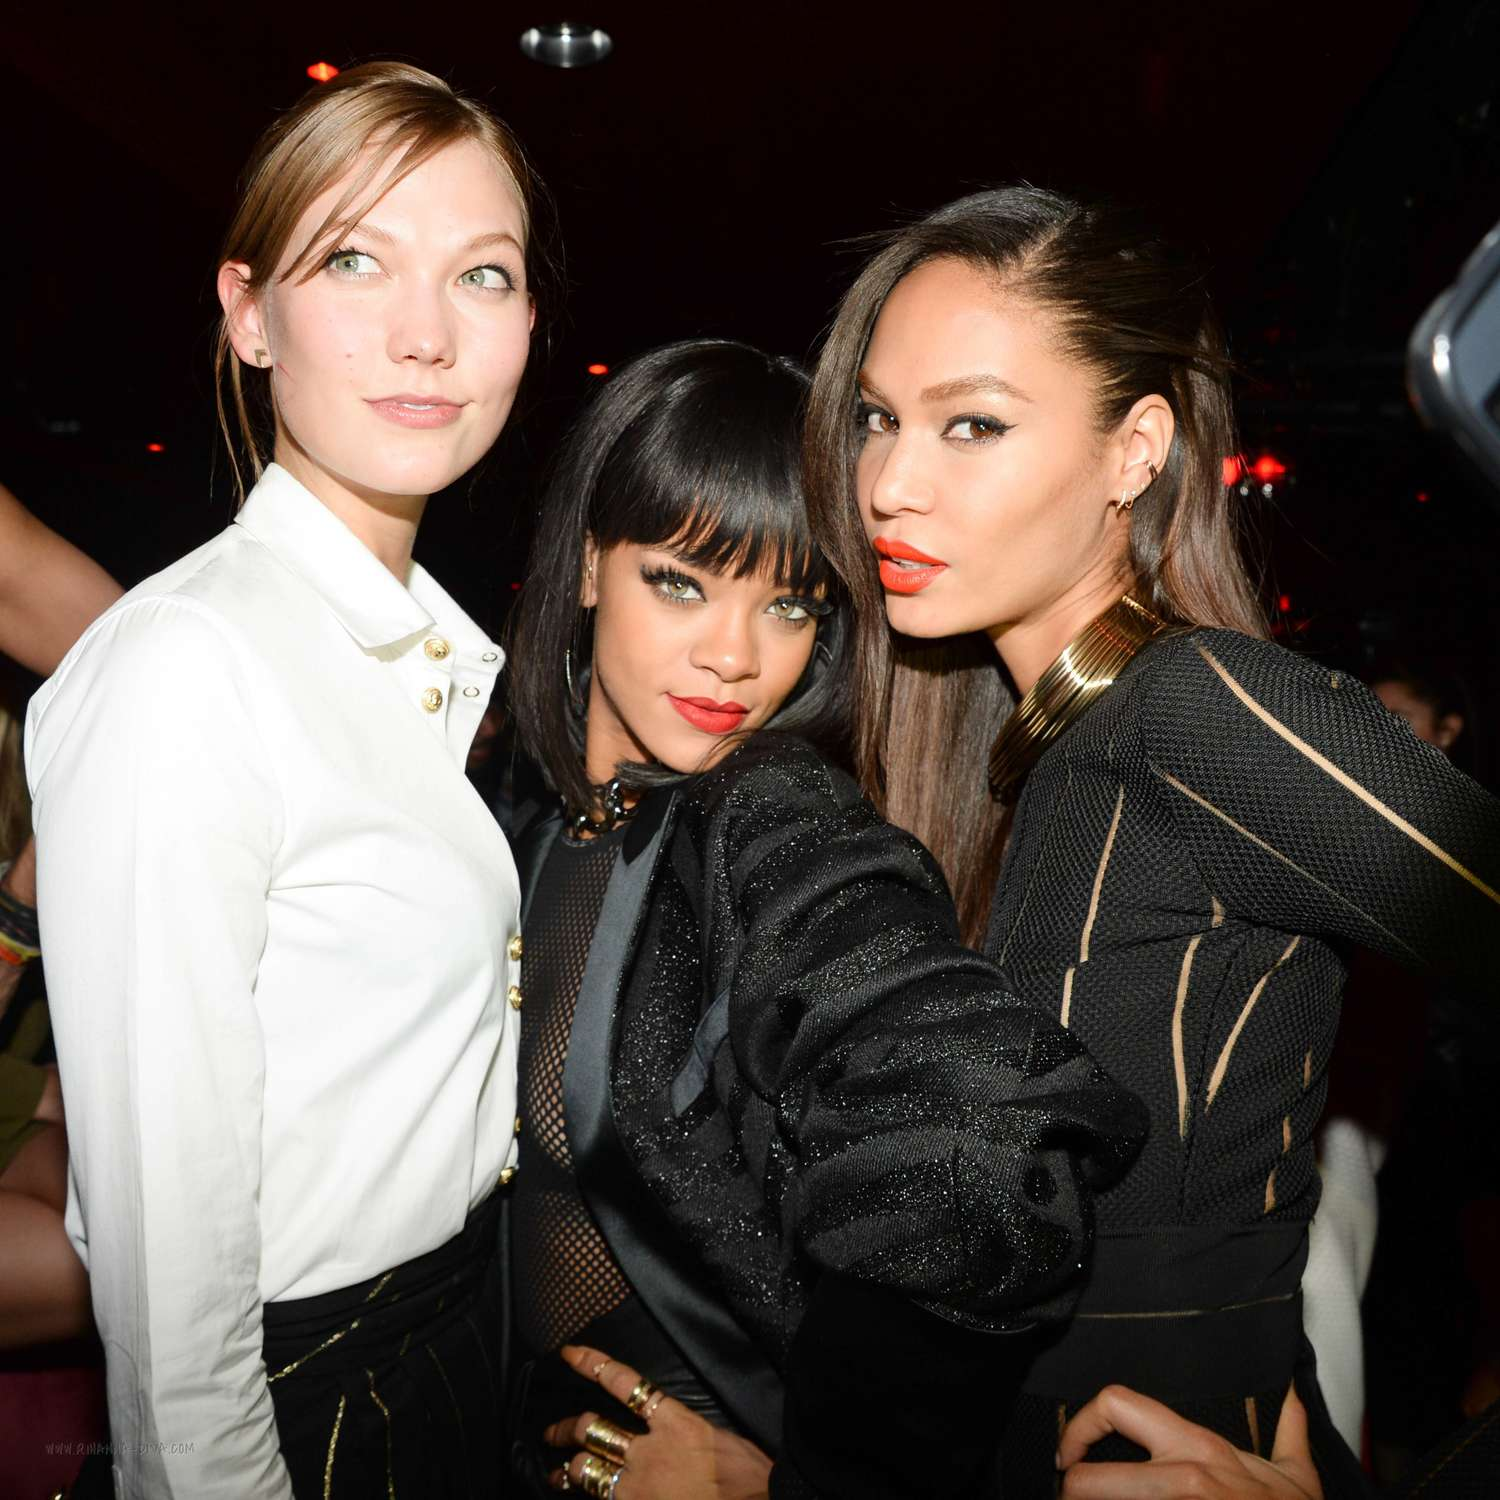 run shoes price reduced authentic quality Rihanna: Balmain Paris Fashion Show 2014 After Party -17 ...